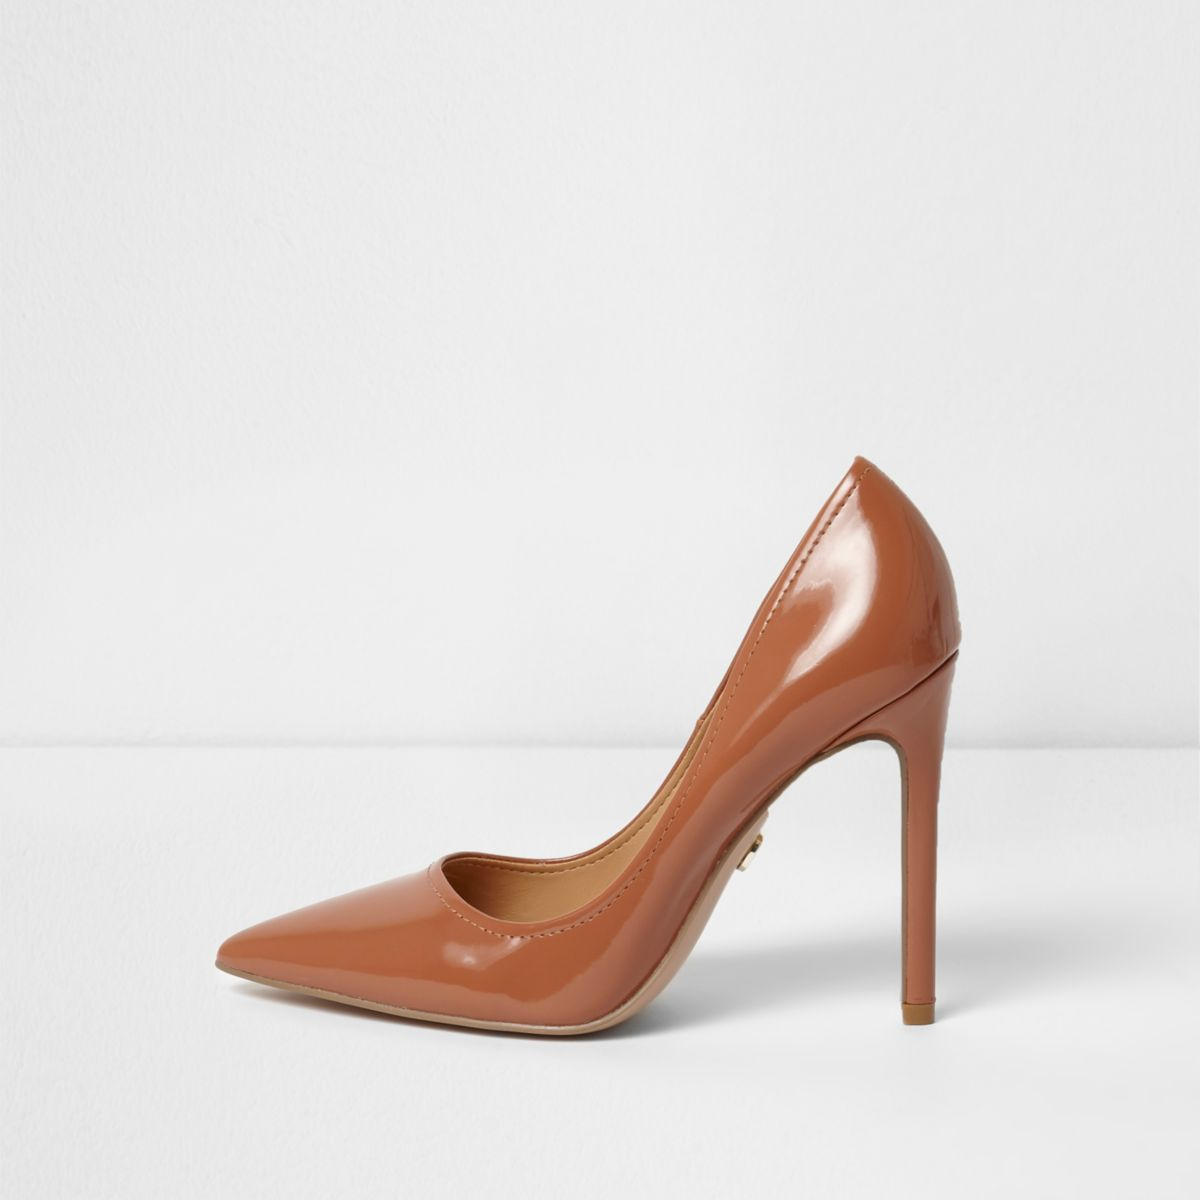 Tan patent pointed toe pumps